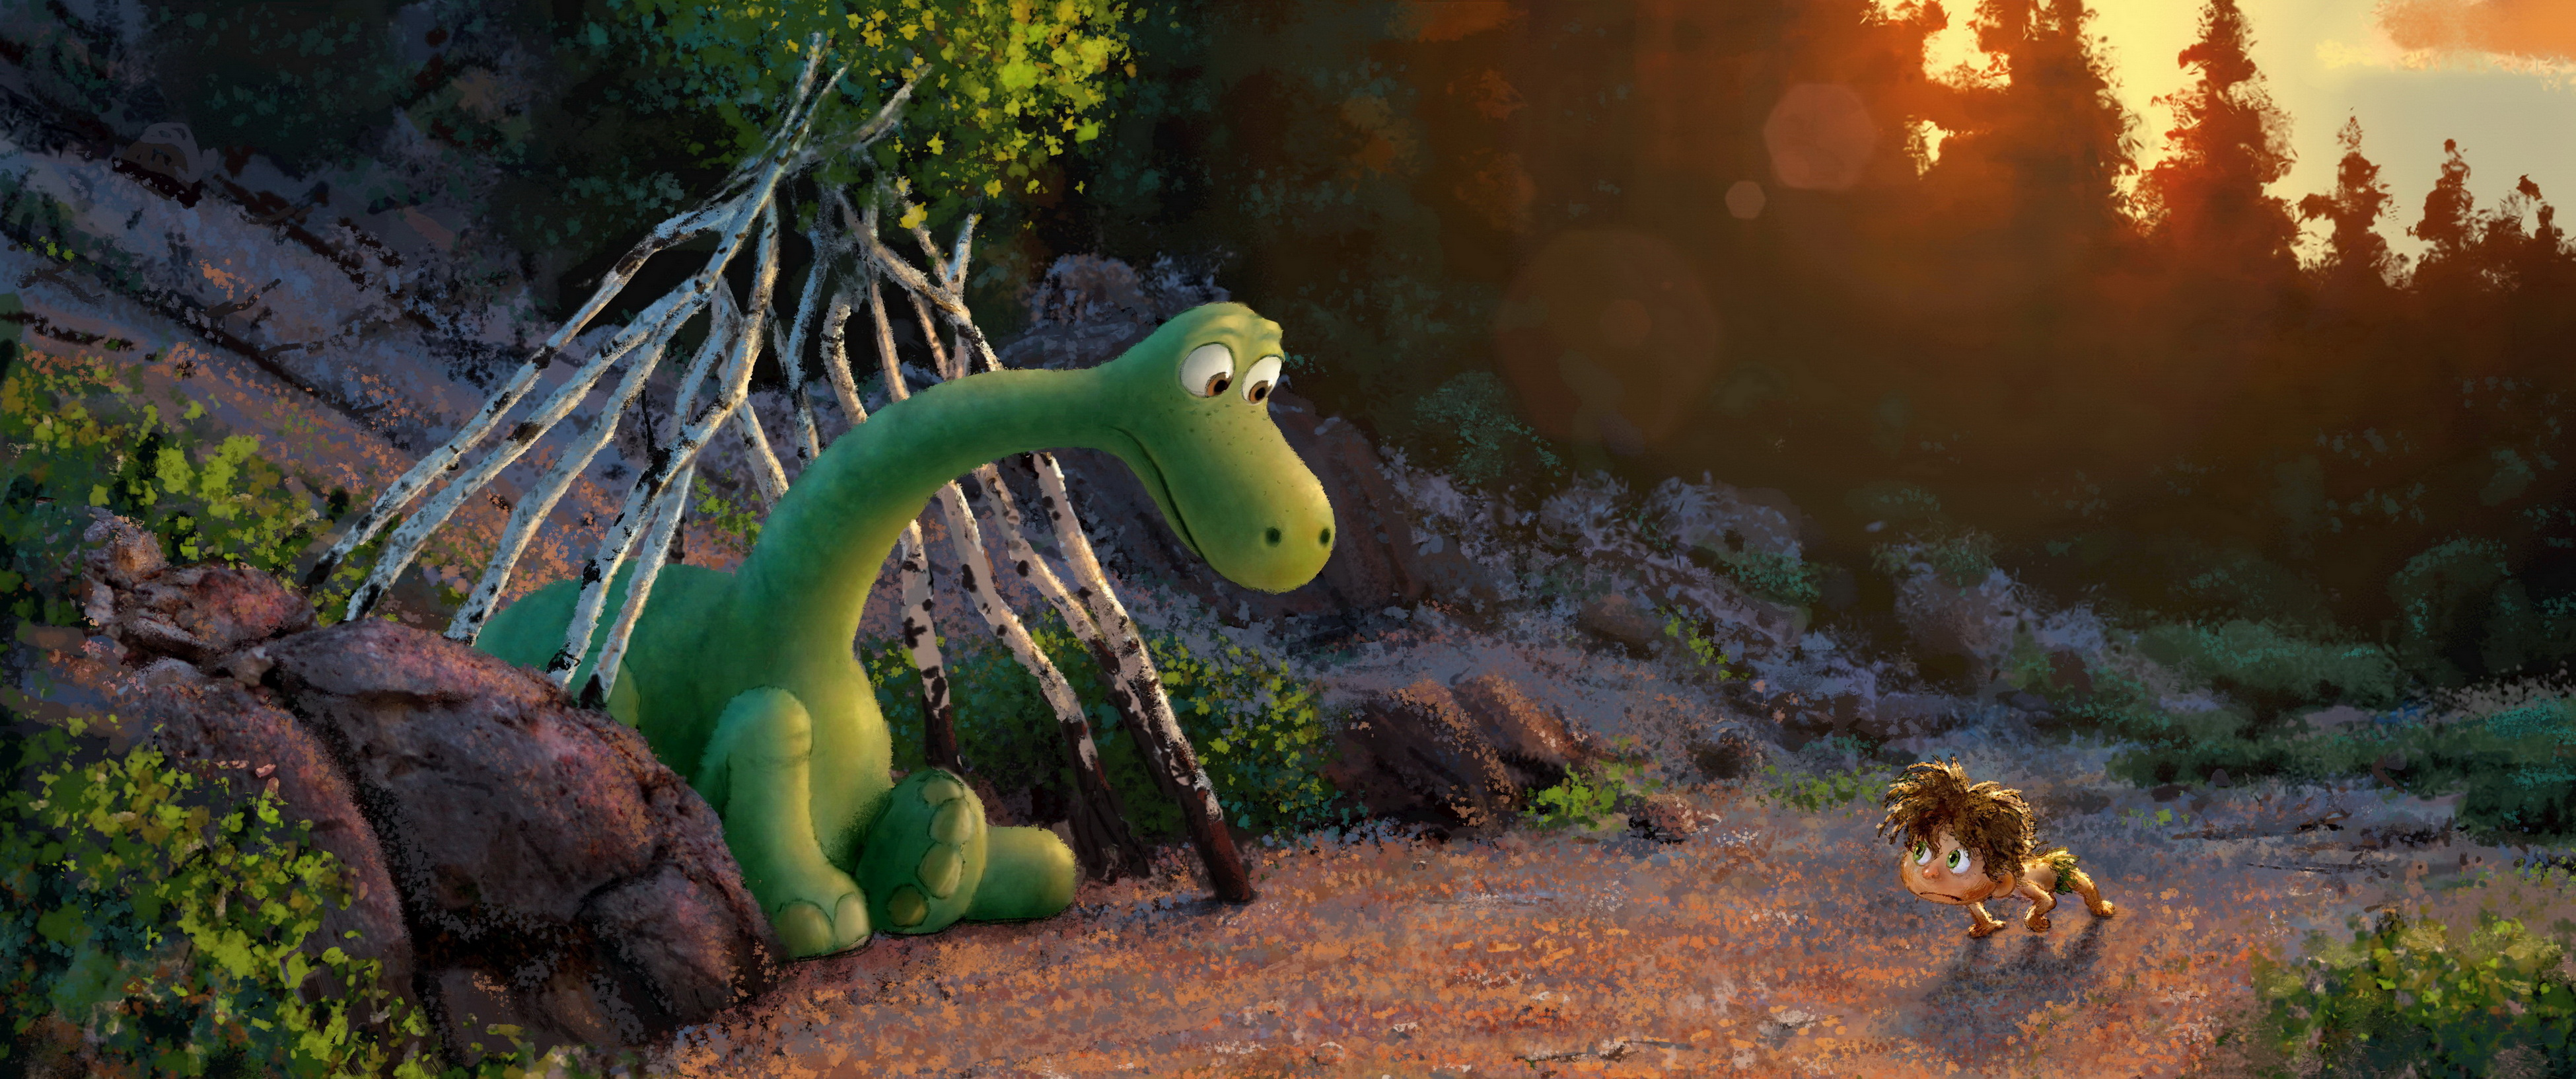 pixar disney voyage arlo good dinosaur artwork